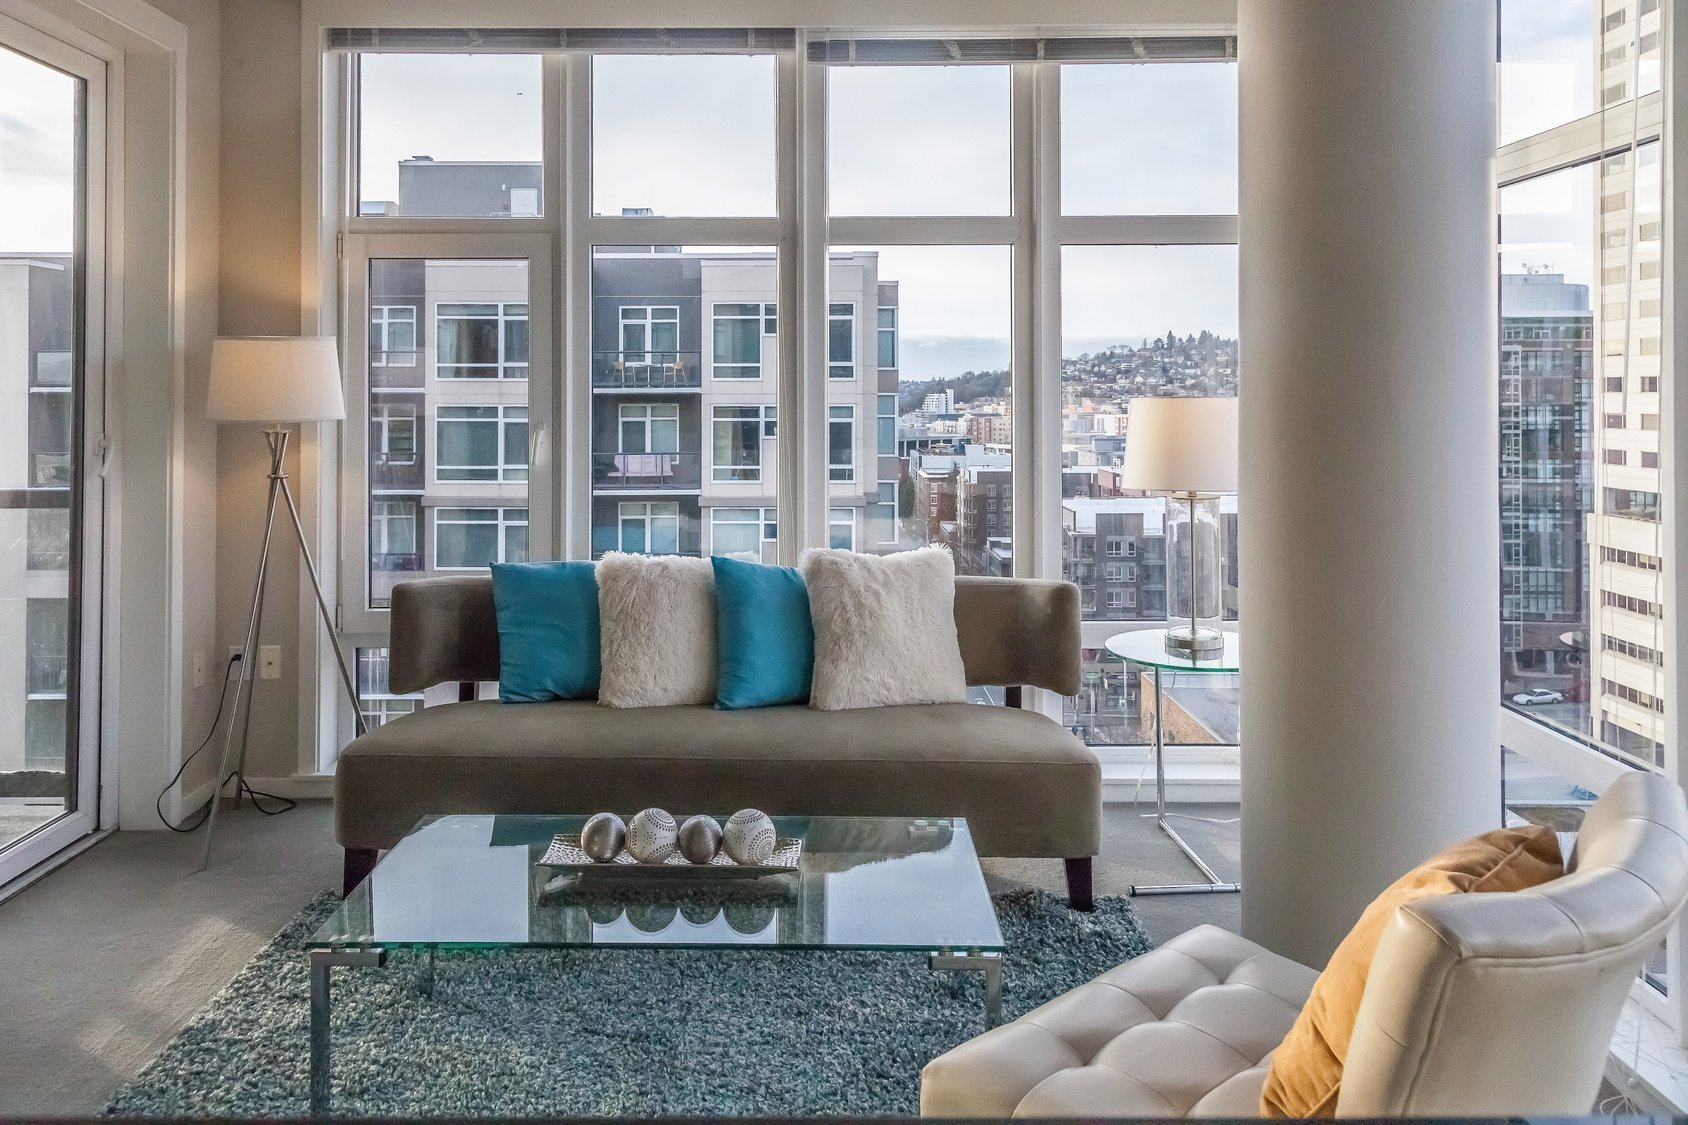 How Buyers Can Choose Between Condos or Single Family Homes